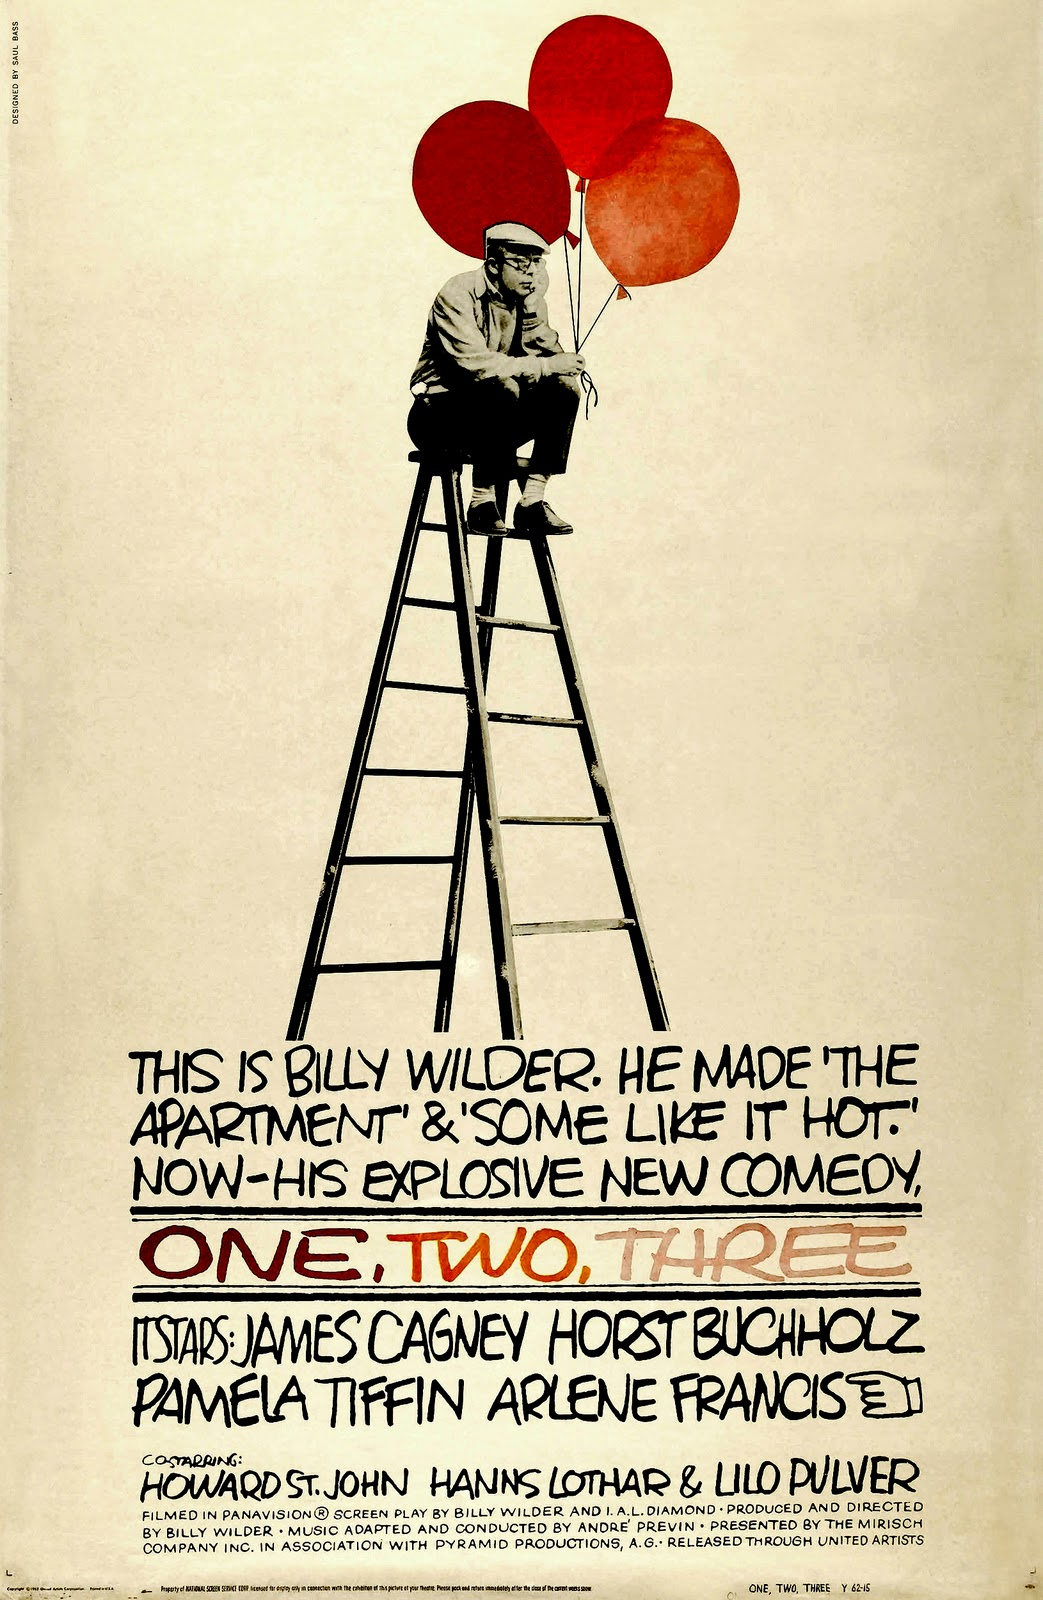 MOVIE POSTERS: ONE, TWO, THREE (1961)